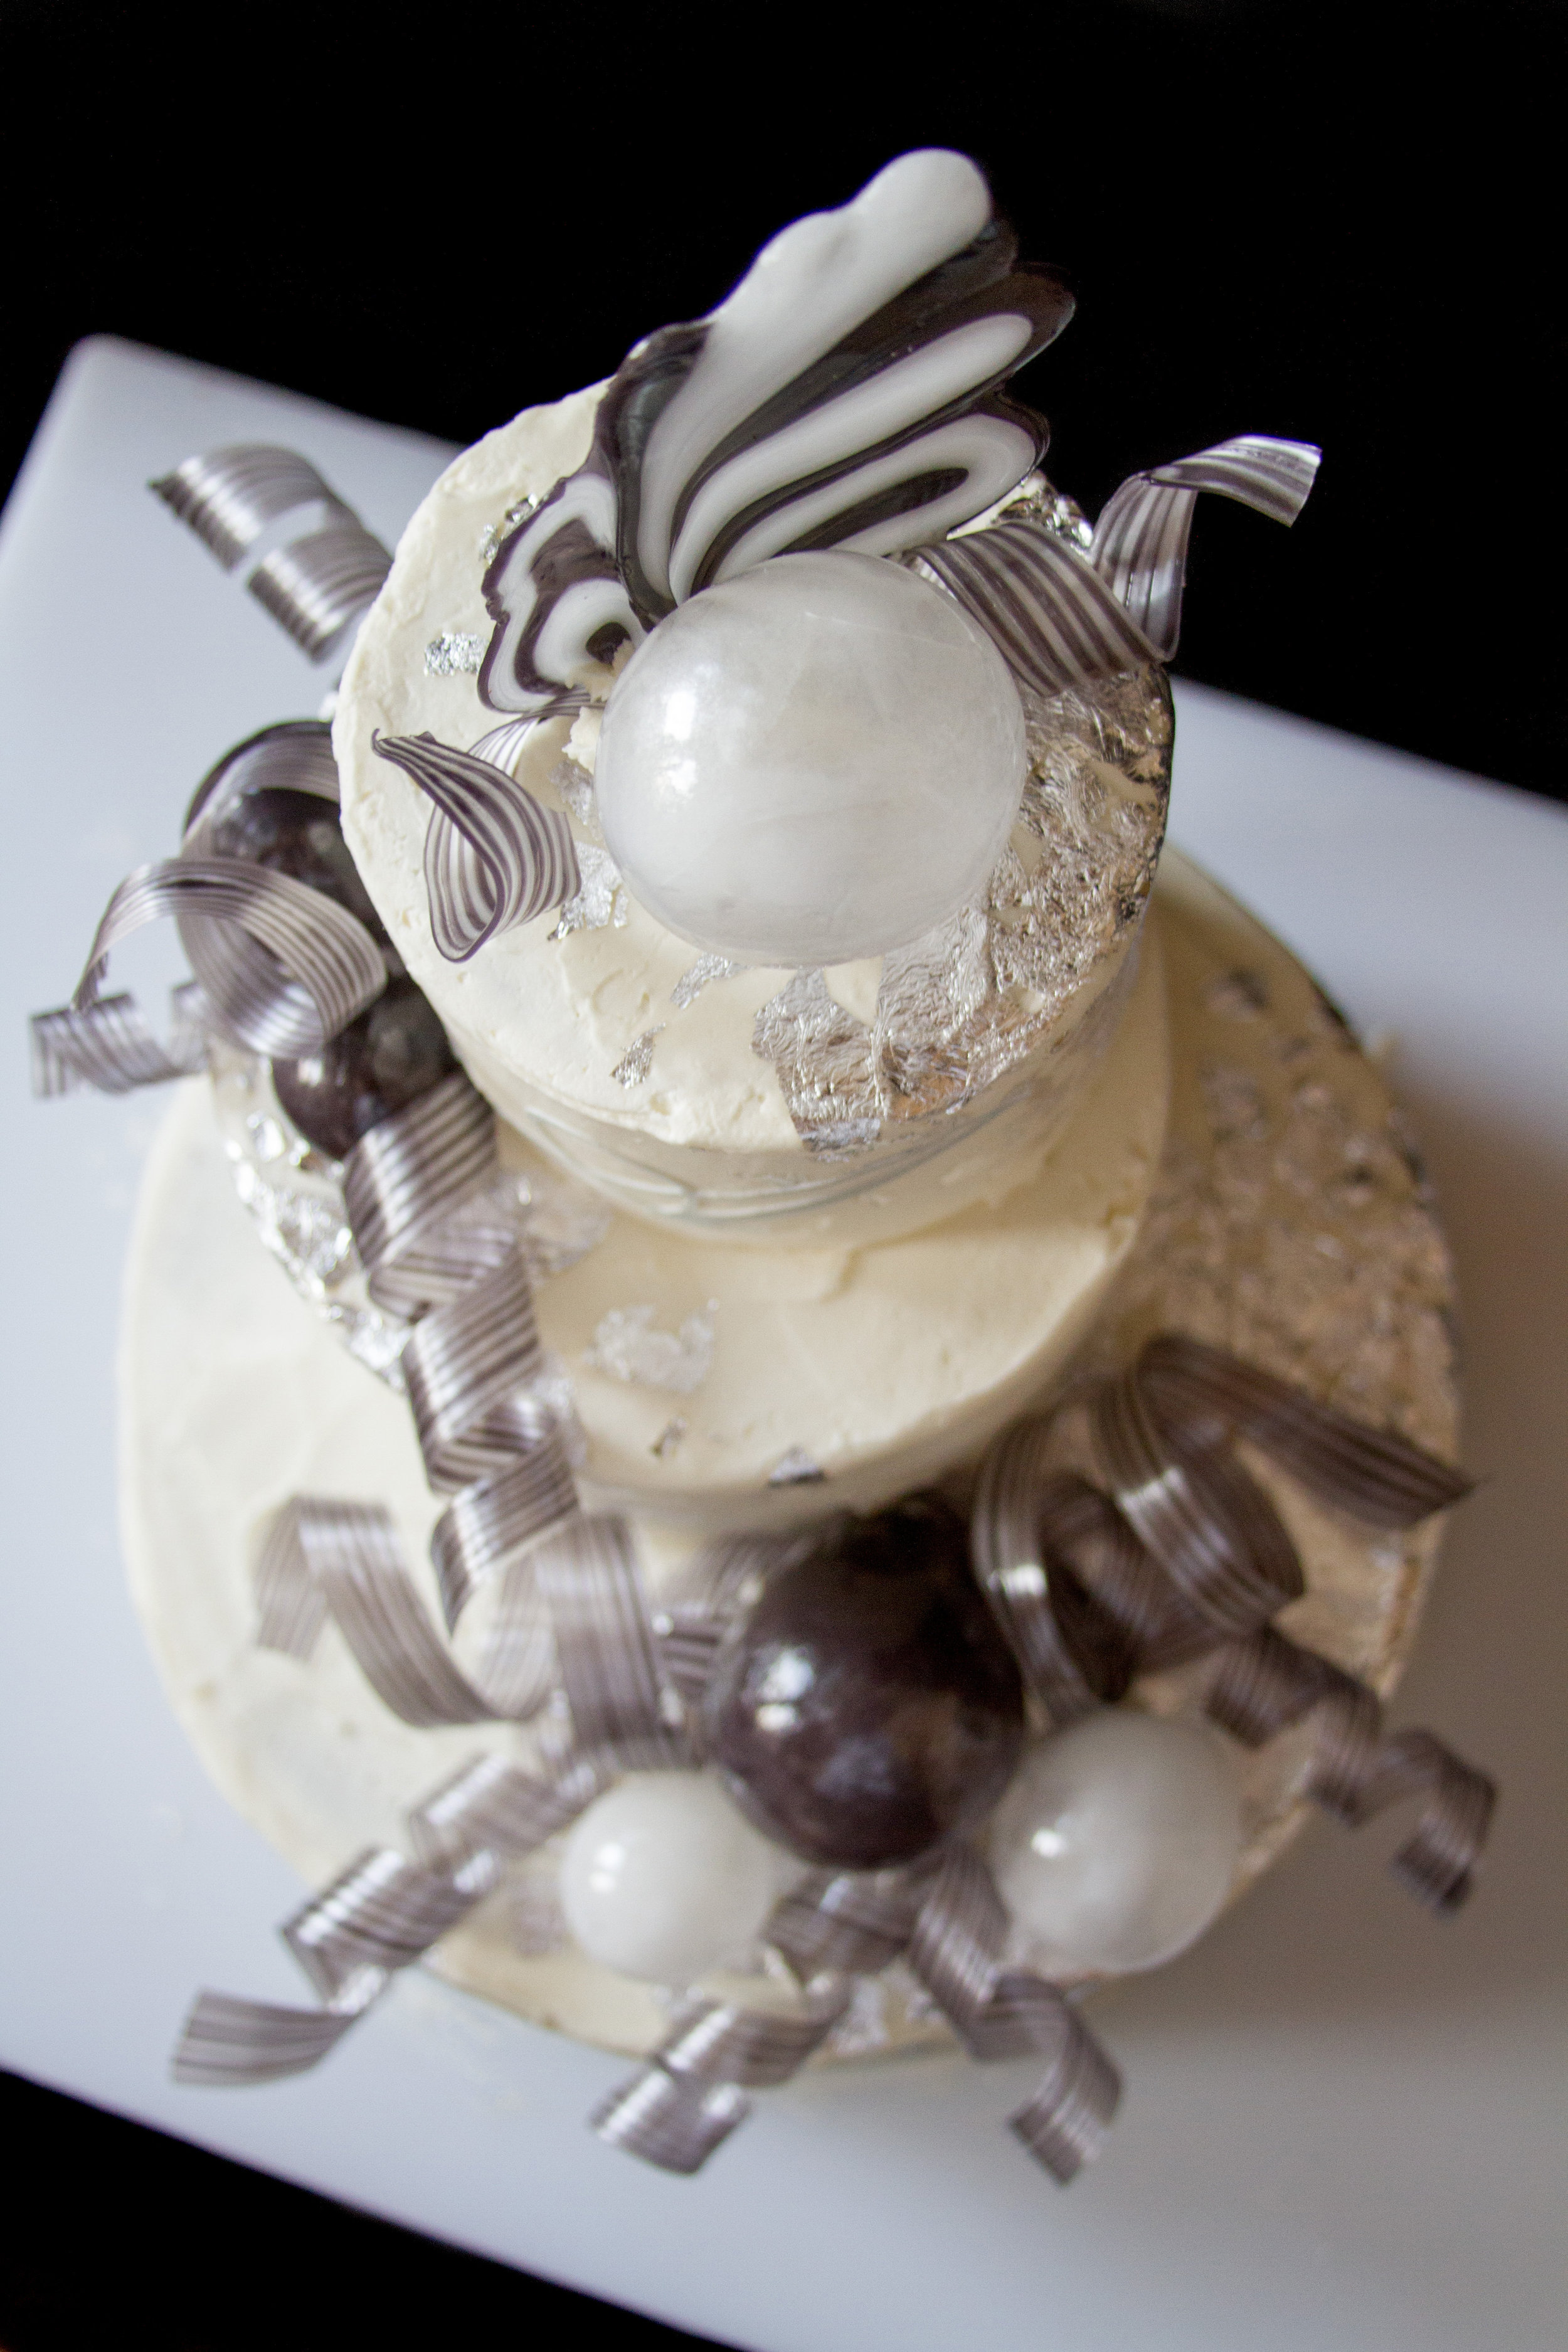 Silver Leaf, Blown Sugar orbs, and Pulled Sugar Ribbons on a cake. Photo Courtesy of  Annah Hamby Photography